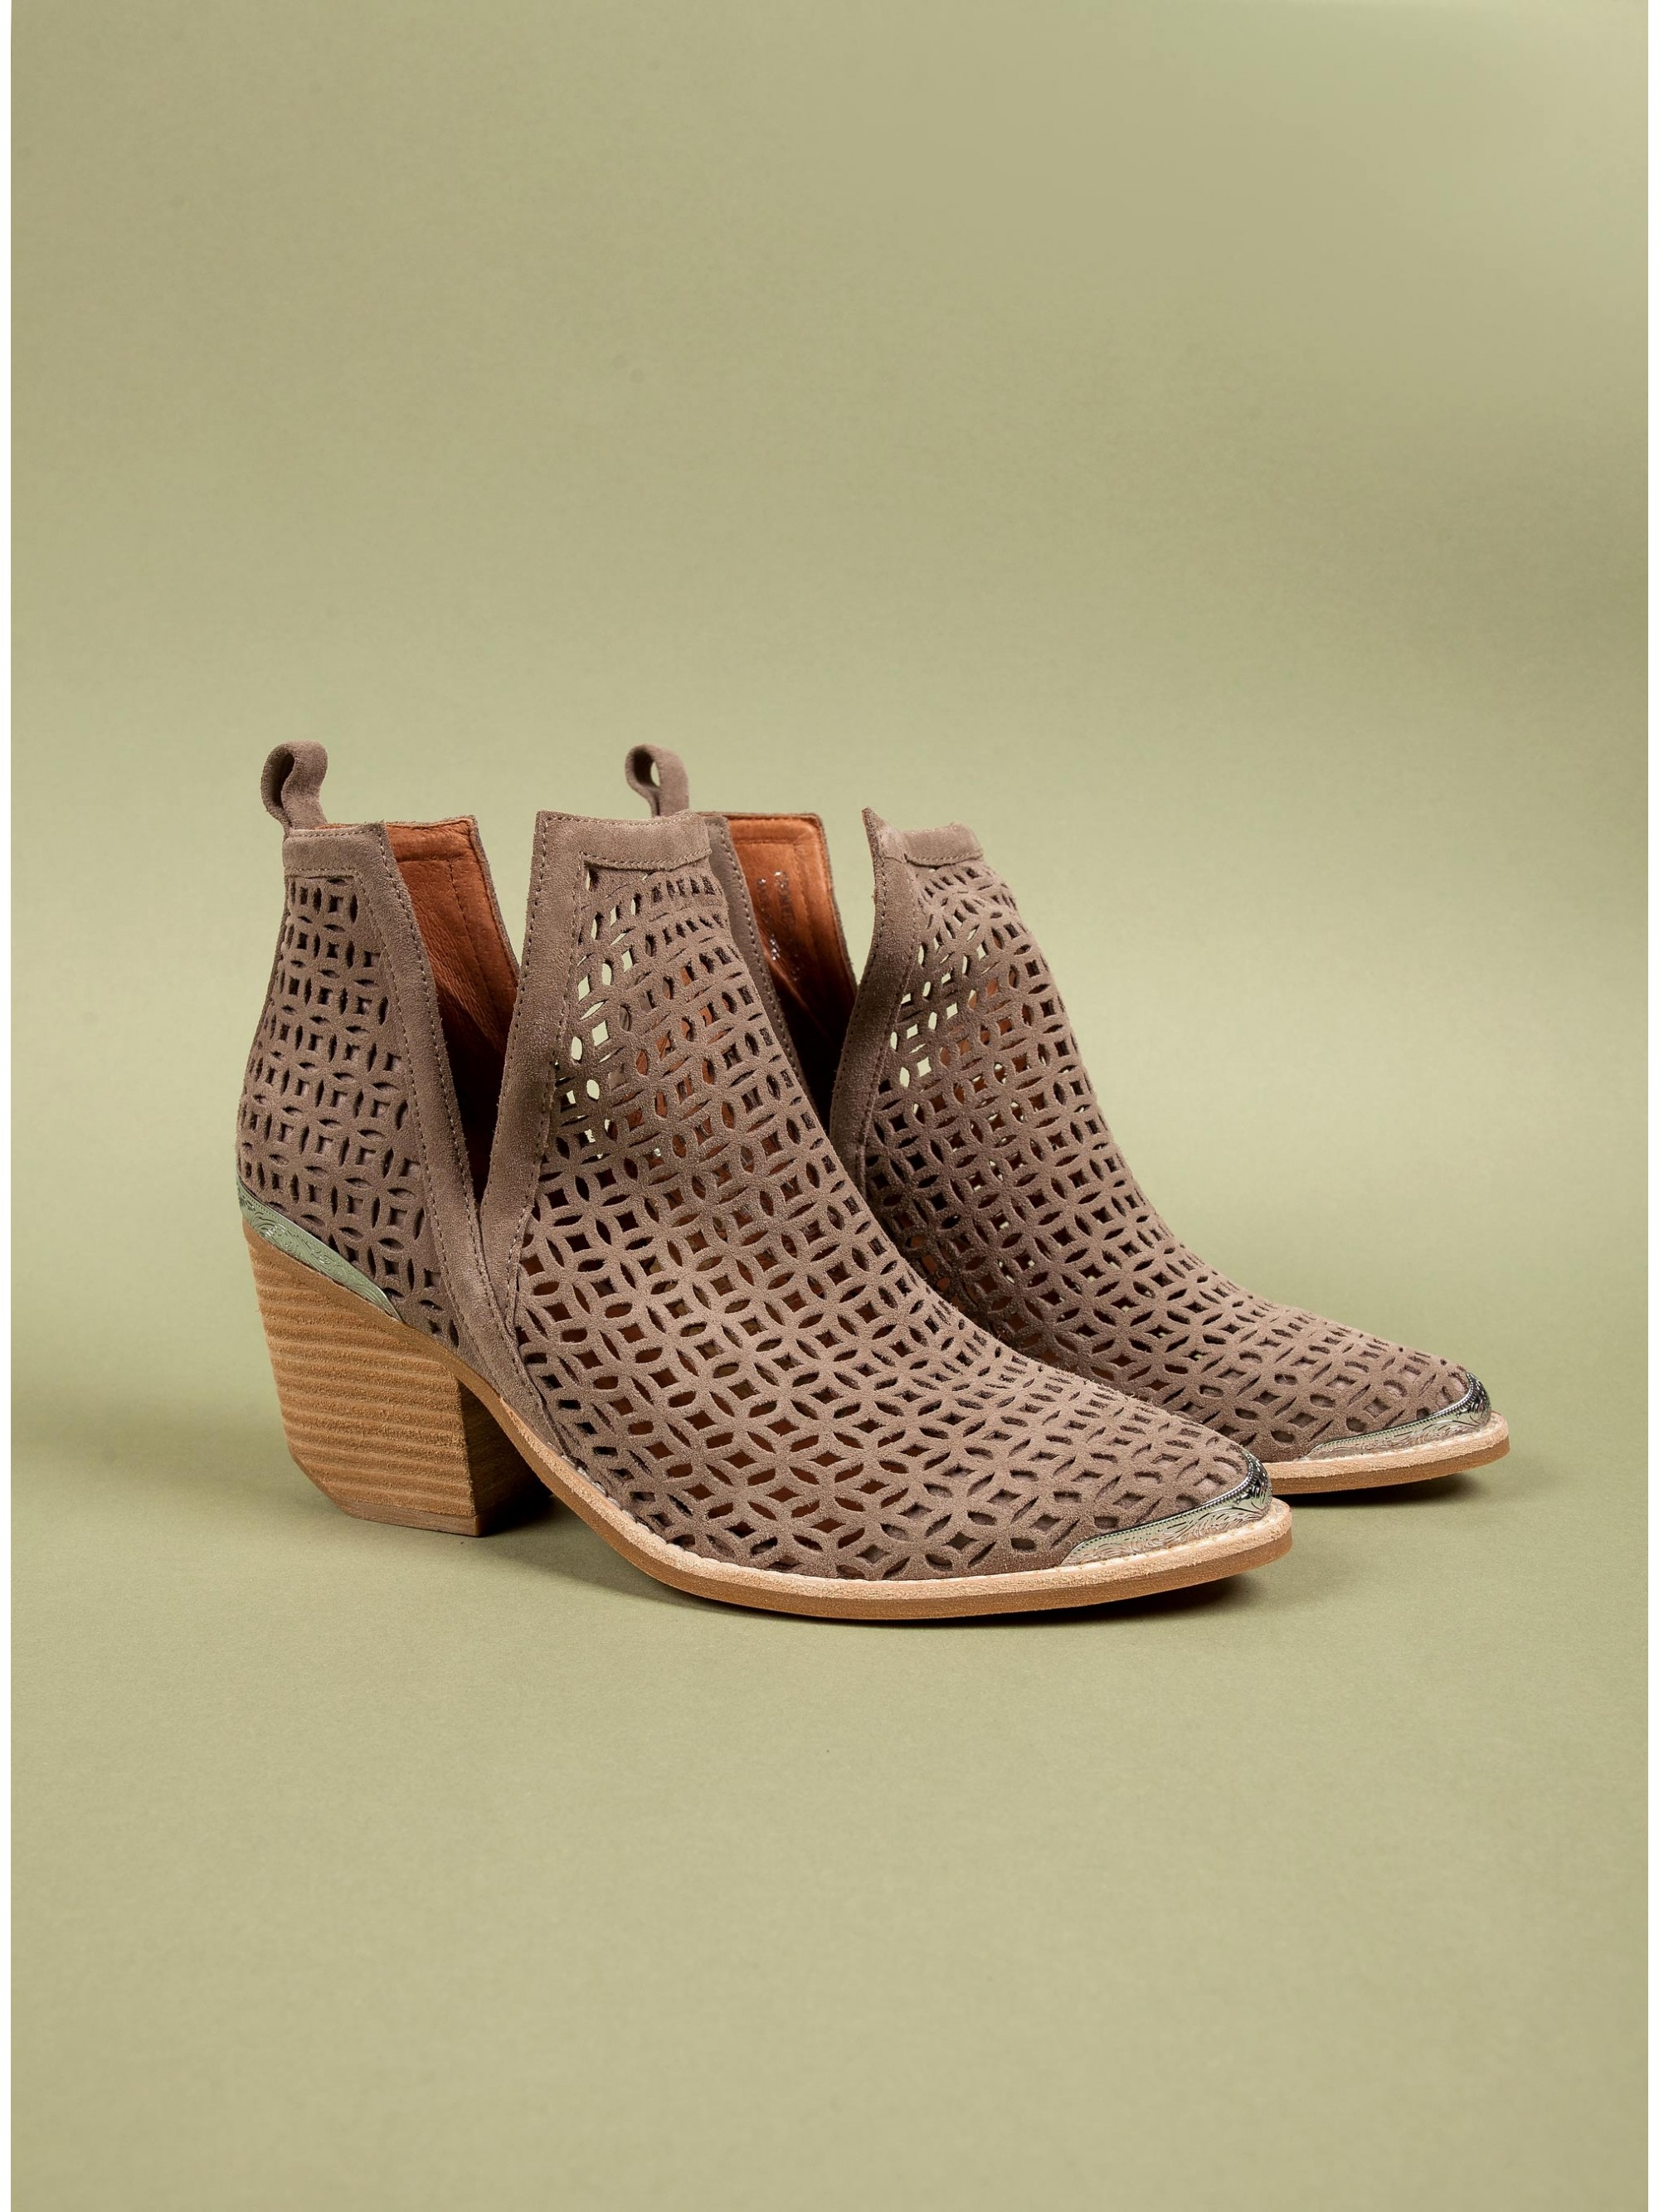 b097d38a6637 Jeffrey Campbell Ankle Boots Comwell-Beige - Women